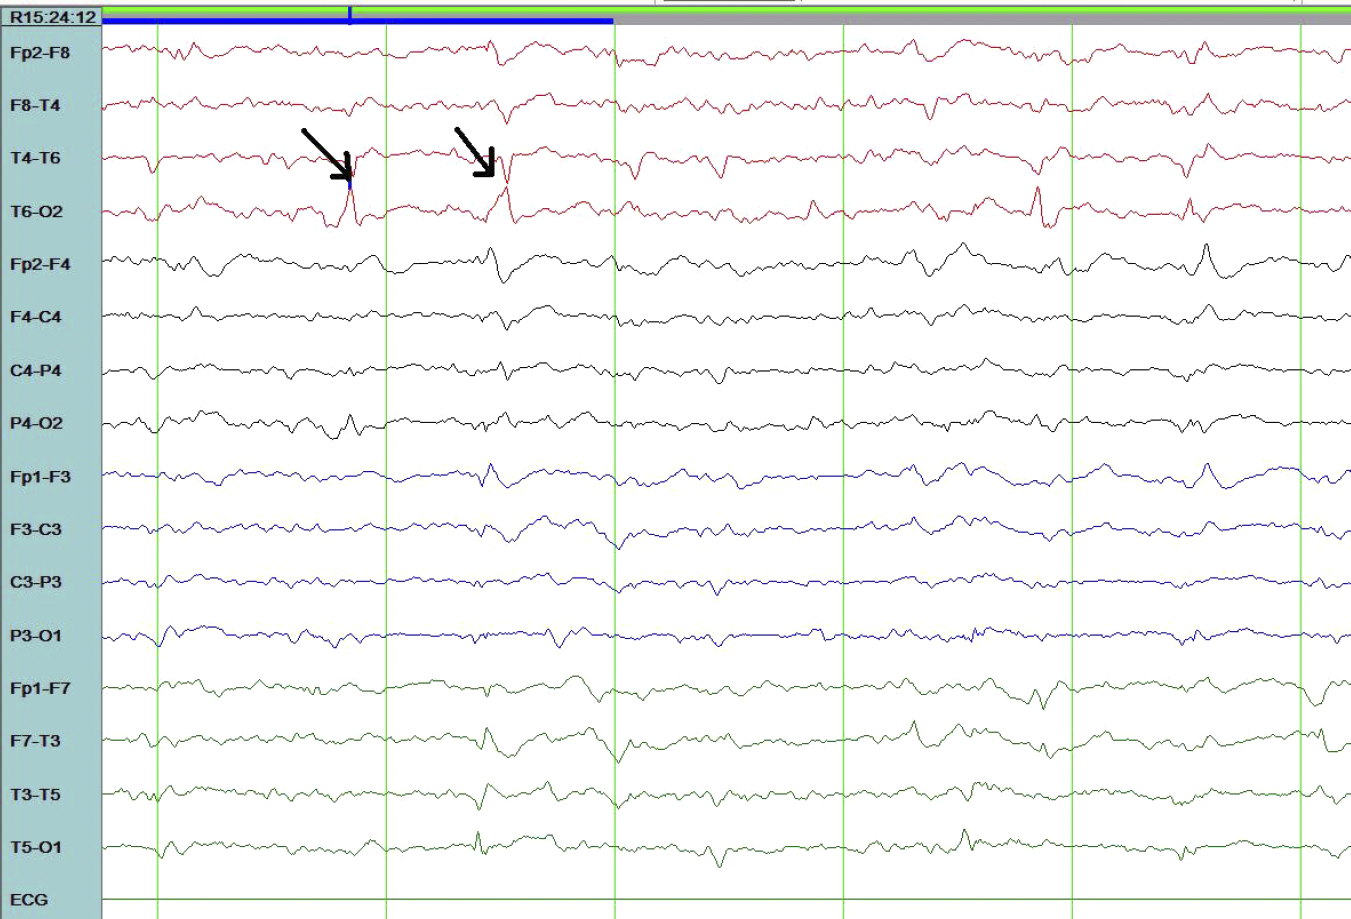 Electroencephalogram Showing Repetitive Focal Spikes or Sharps Less Than Three per Second